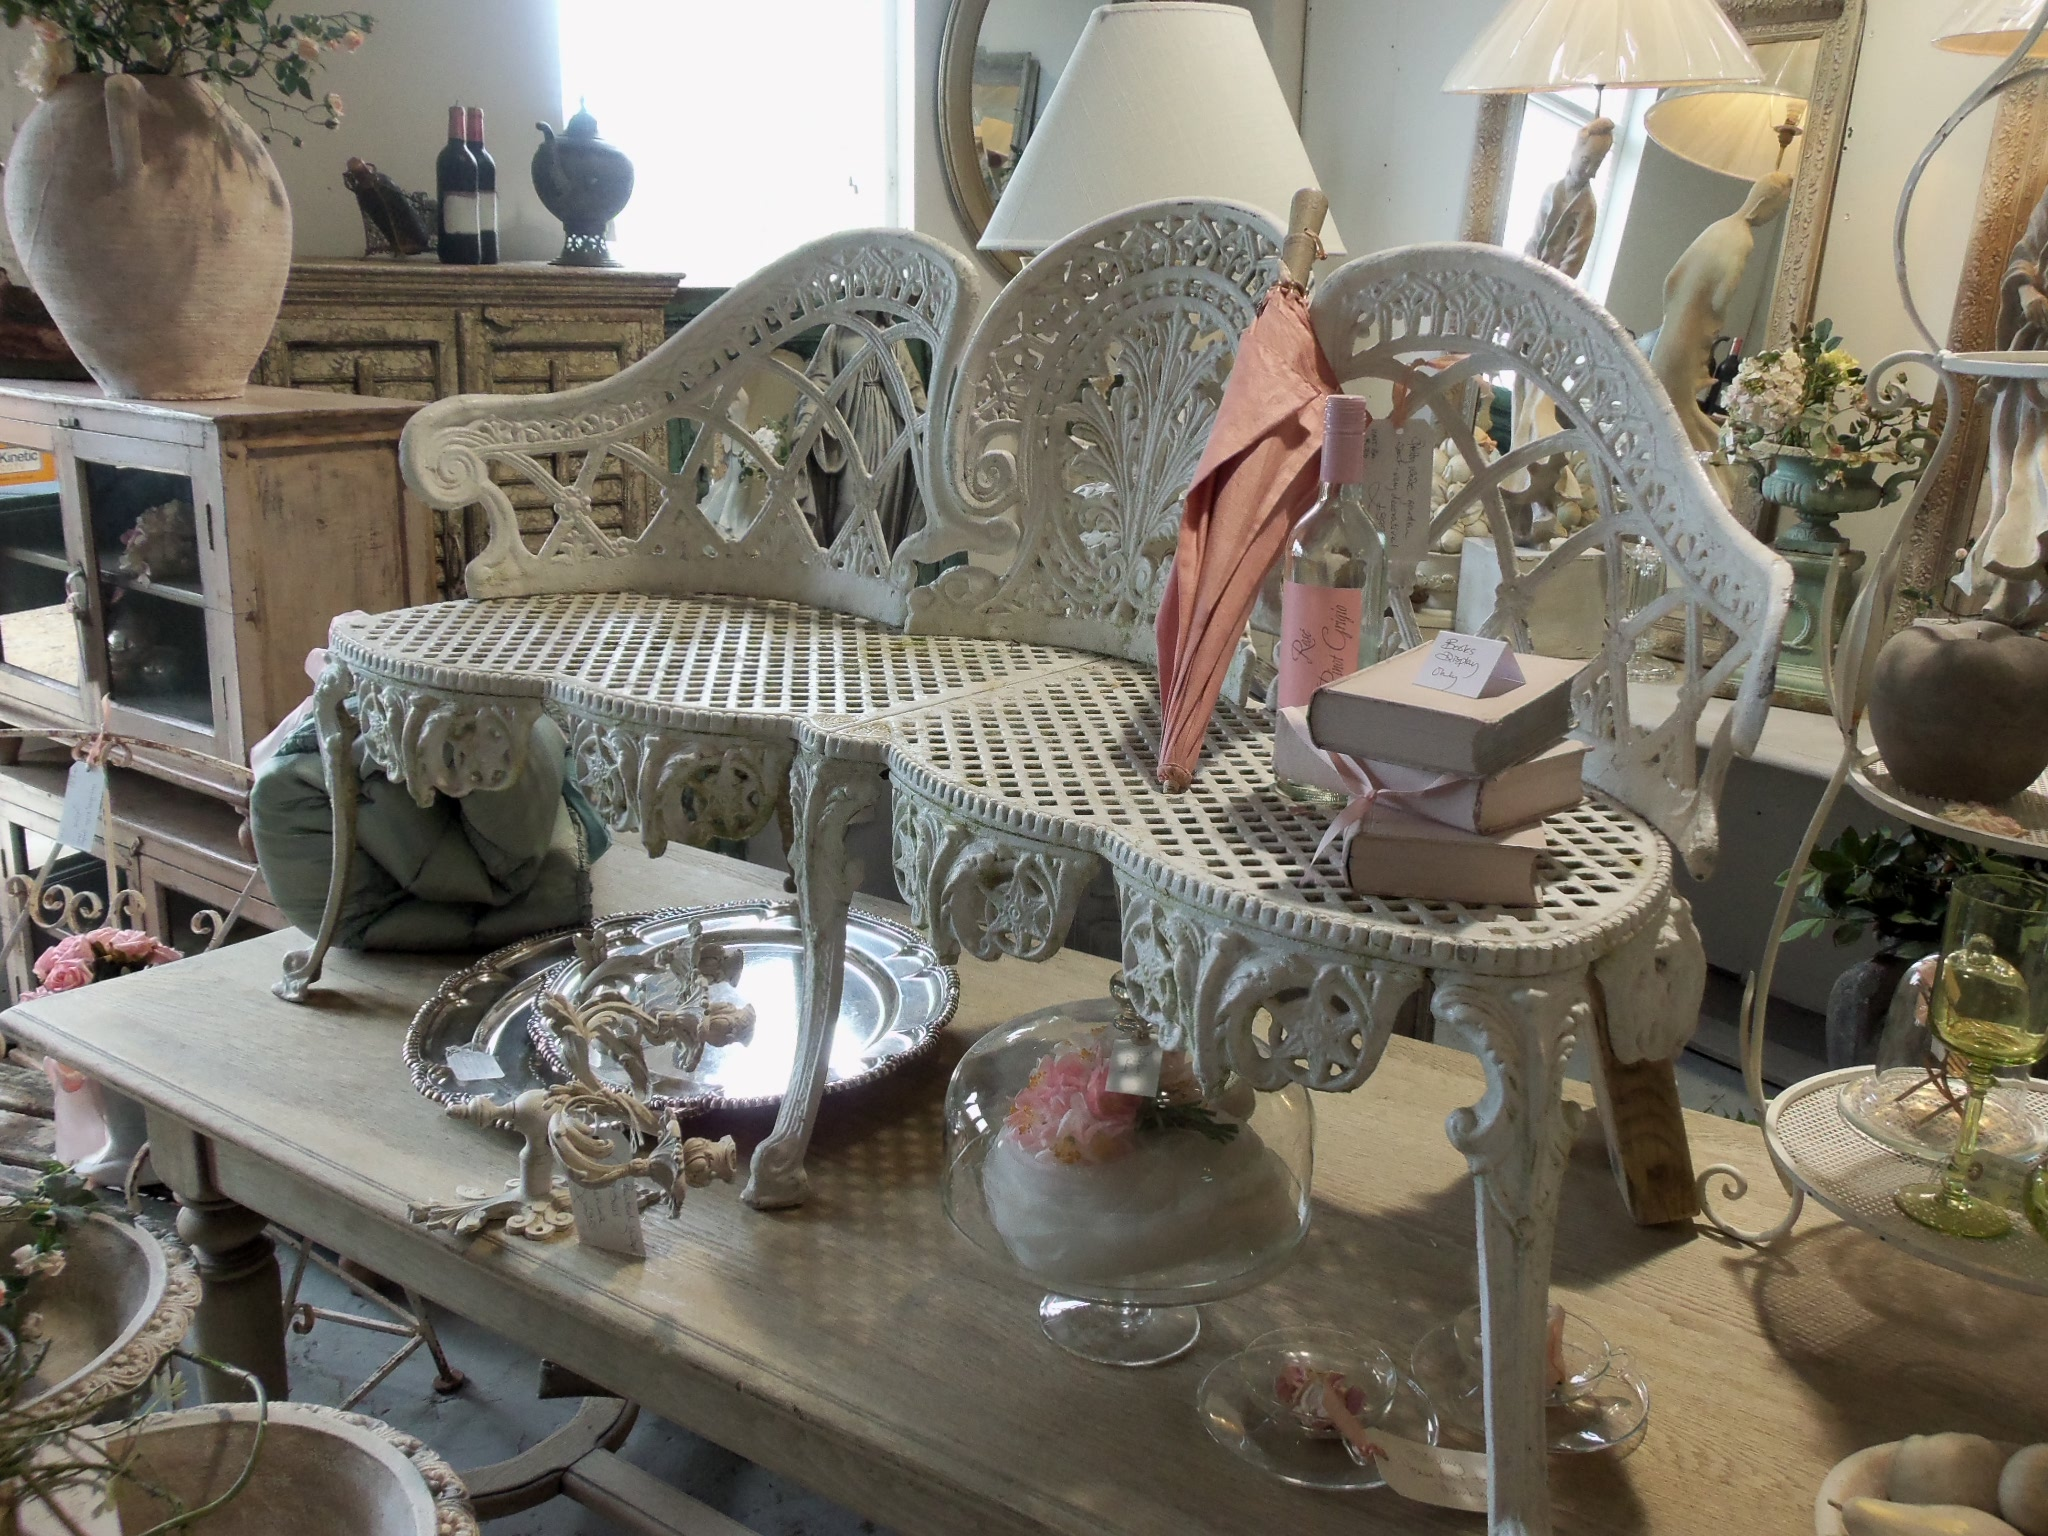 oxfordshire antique wrought iron bench